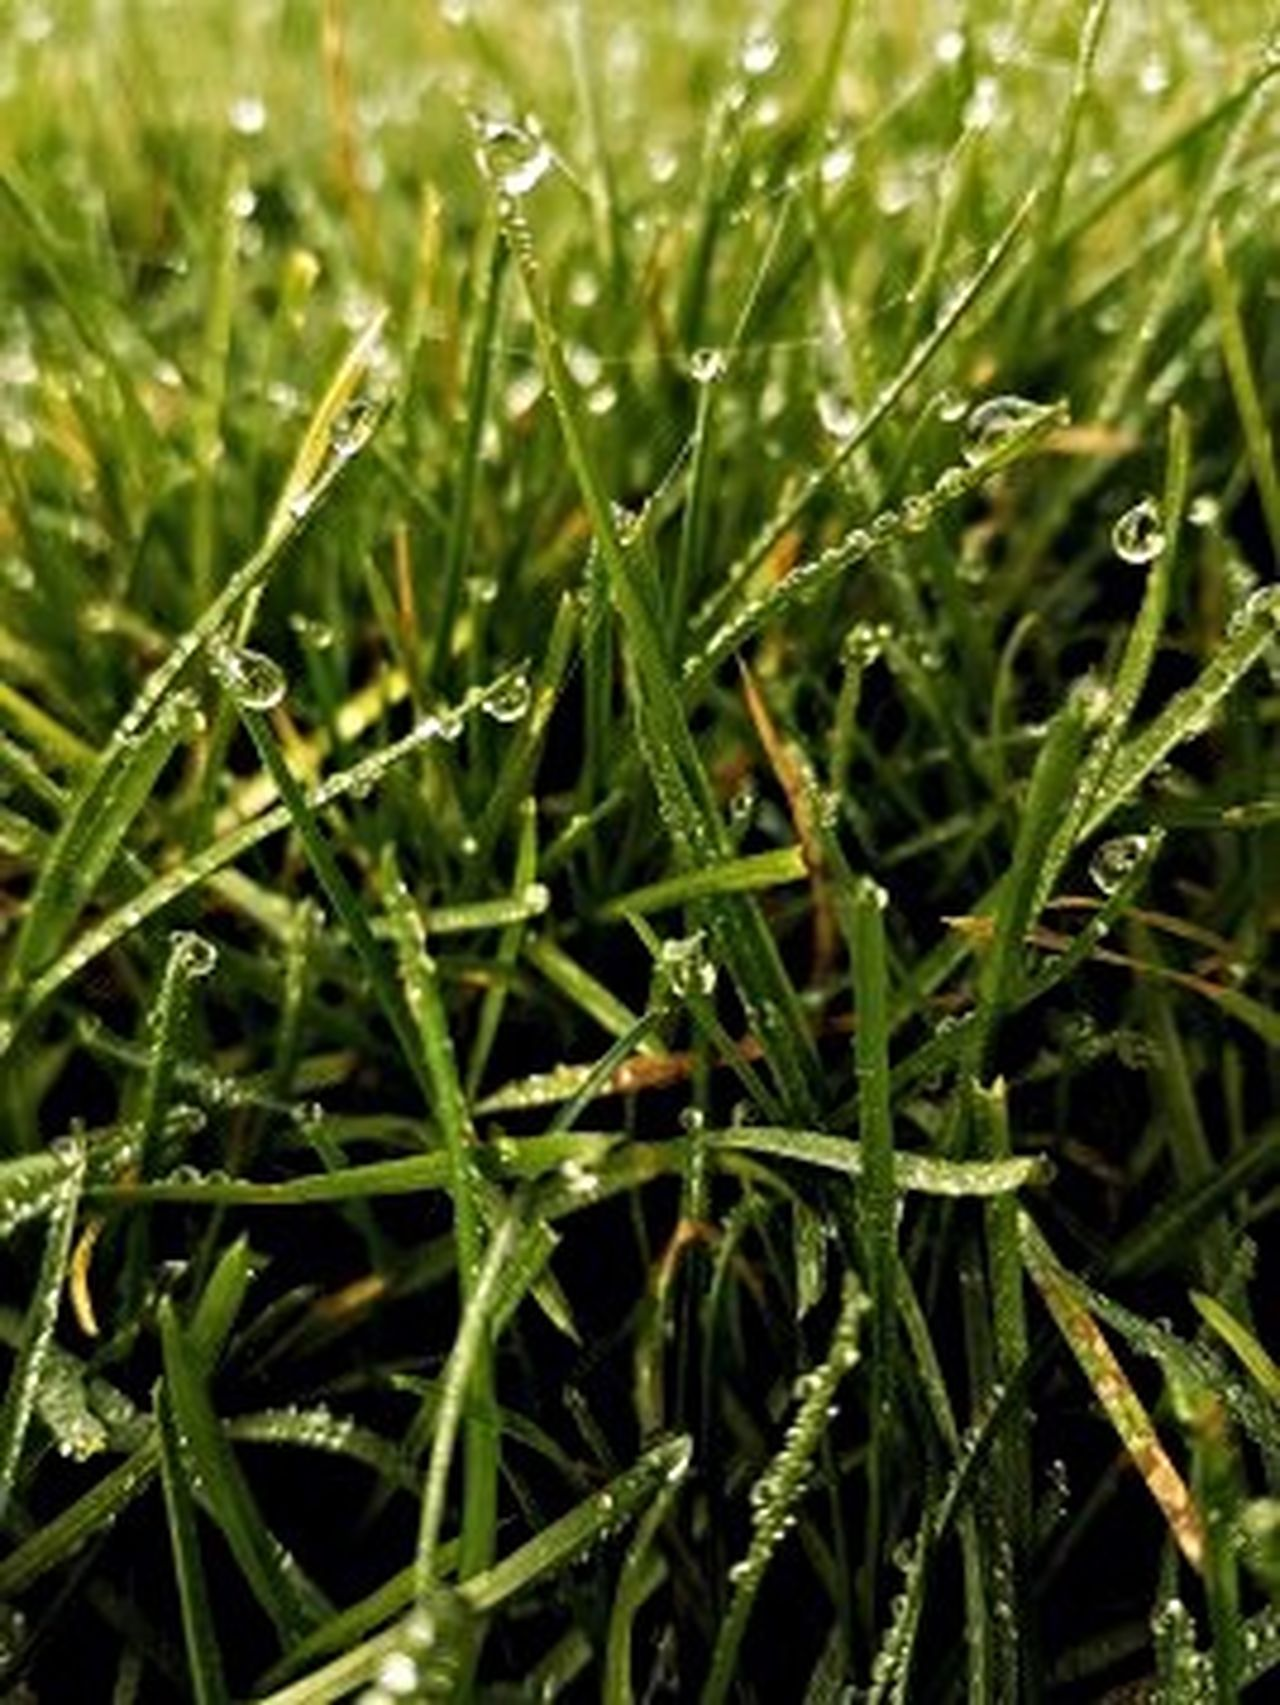 Nature Green Color Full Frame Plant Freshness No People Outdoors Growth Drop Close-up Backgrounds Beauty In Nature Water Grass Day Rhi-Rhi's Photography Shutter Speed